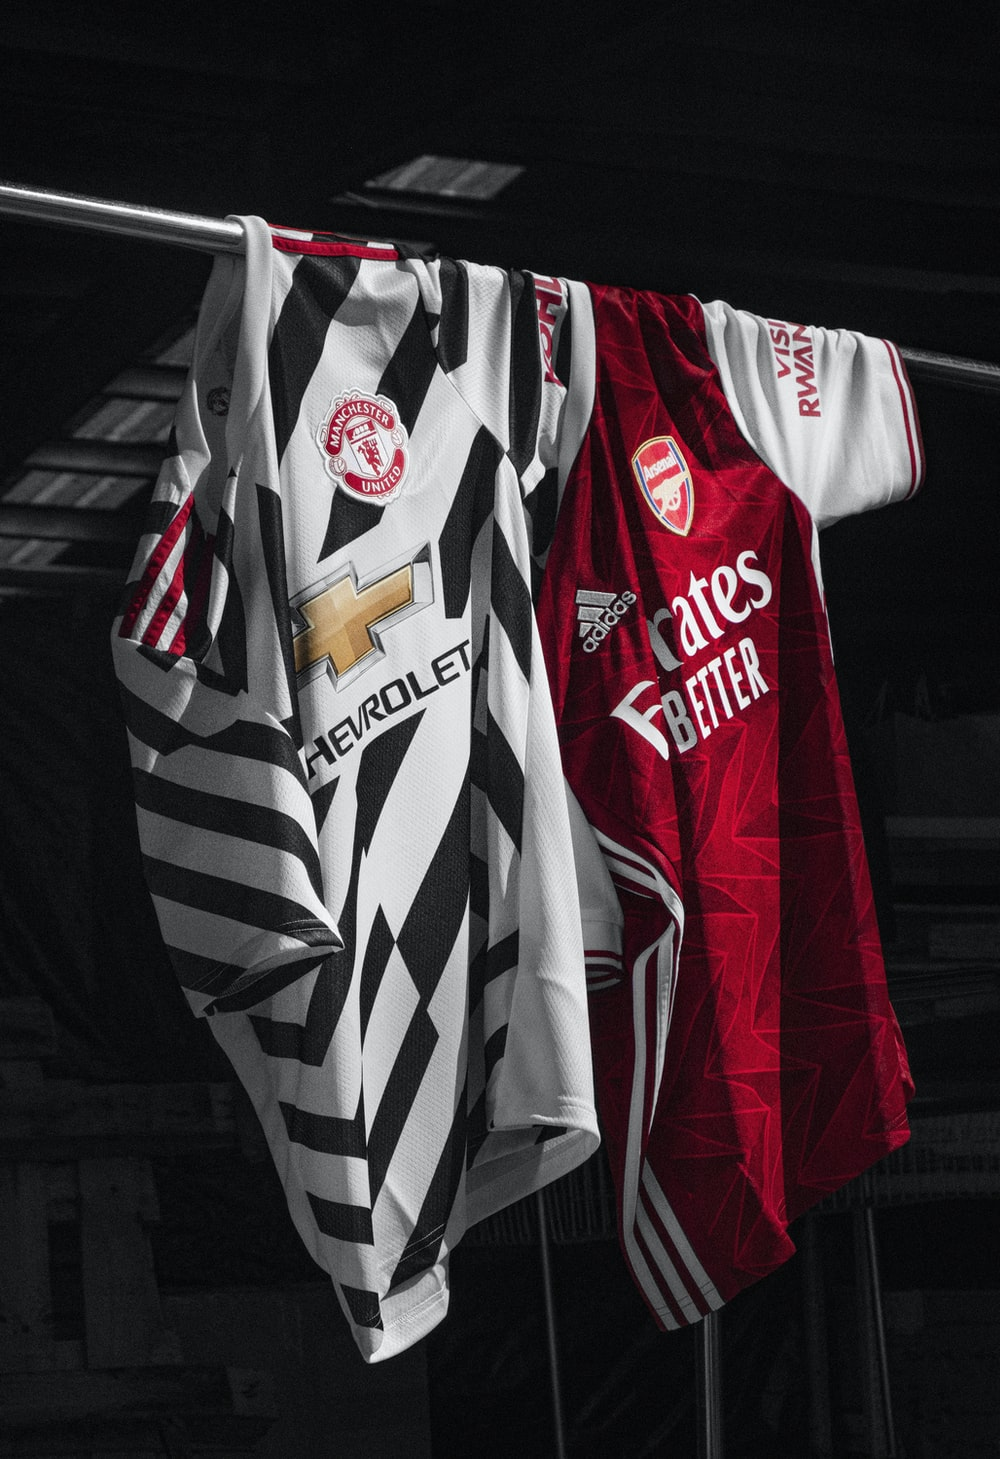 red white and black stripe jersey shirt